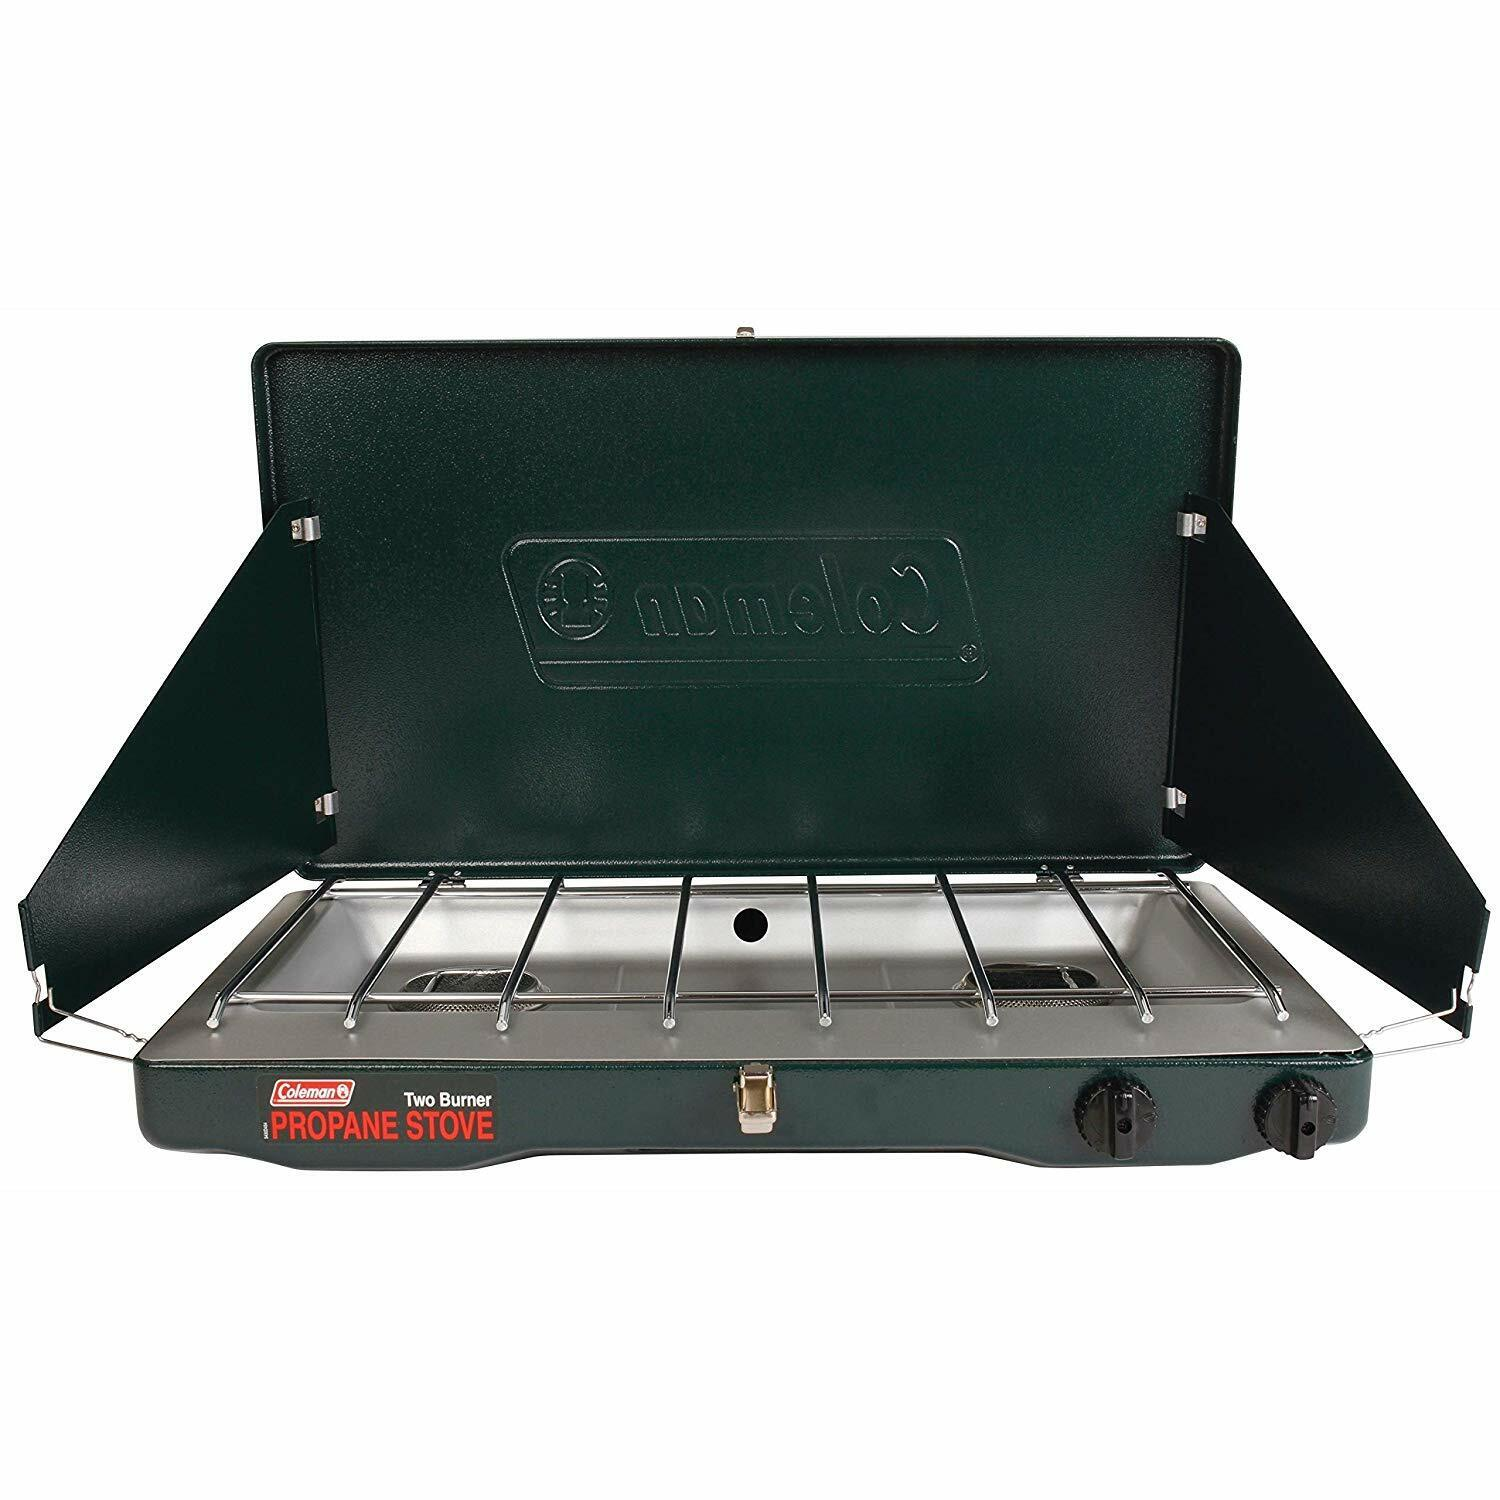 Used Coleman Portable Propane Gas Classic Stove with 2 Burners -just add propane